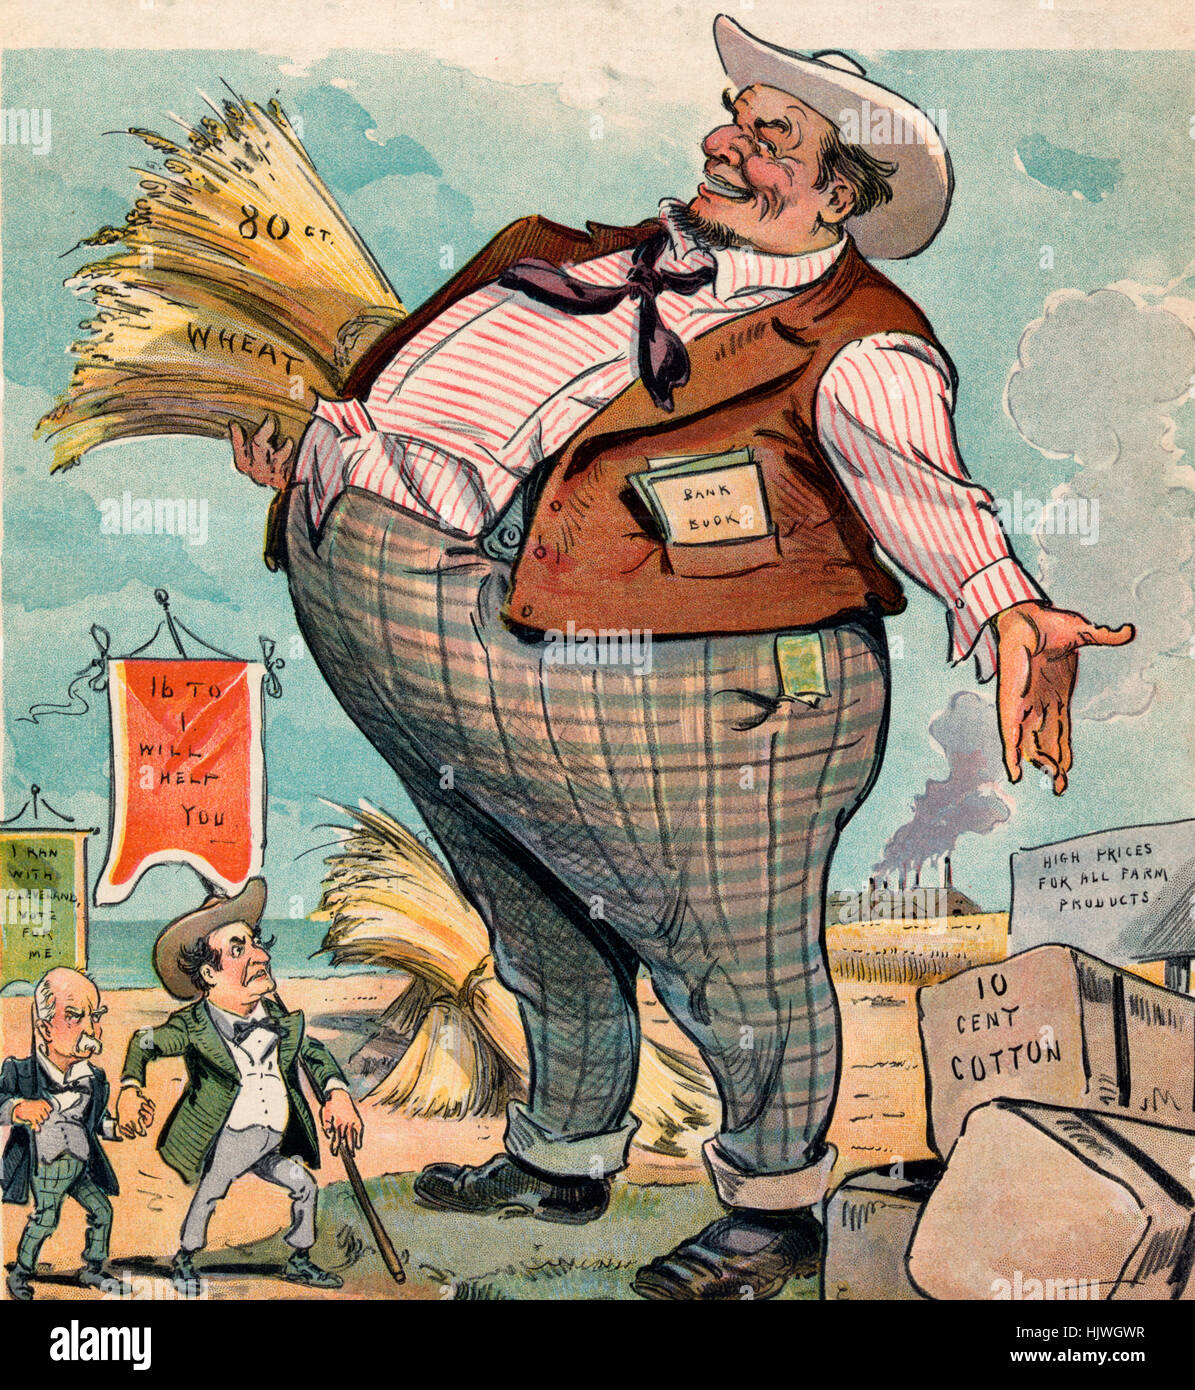 He can't see them -  Political Cartoon shows William Jennings Bryan carrying a banner that states '16 to - Stock Image